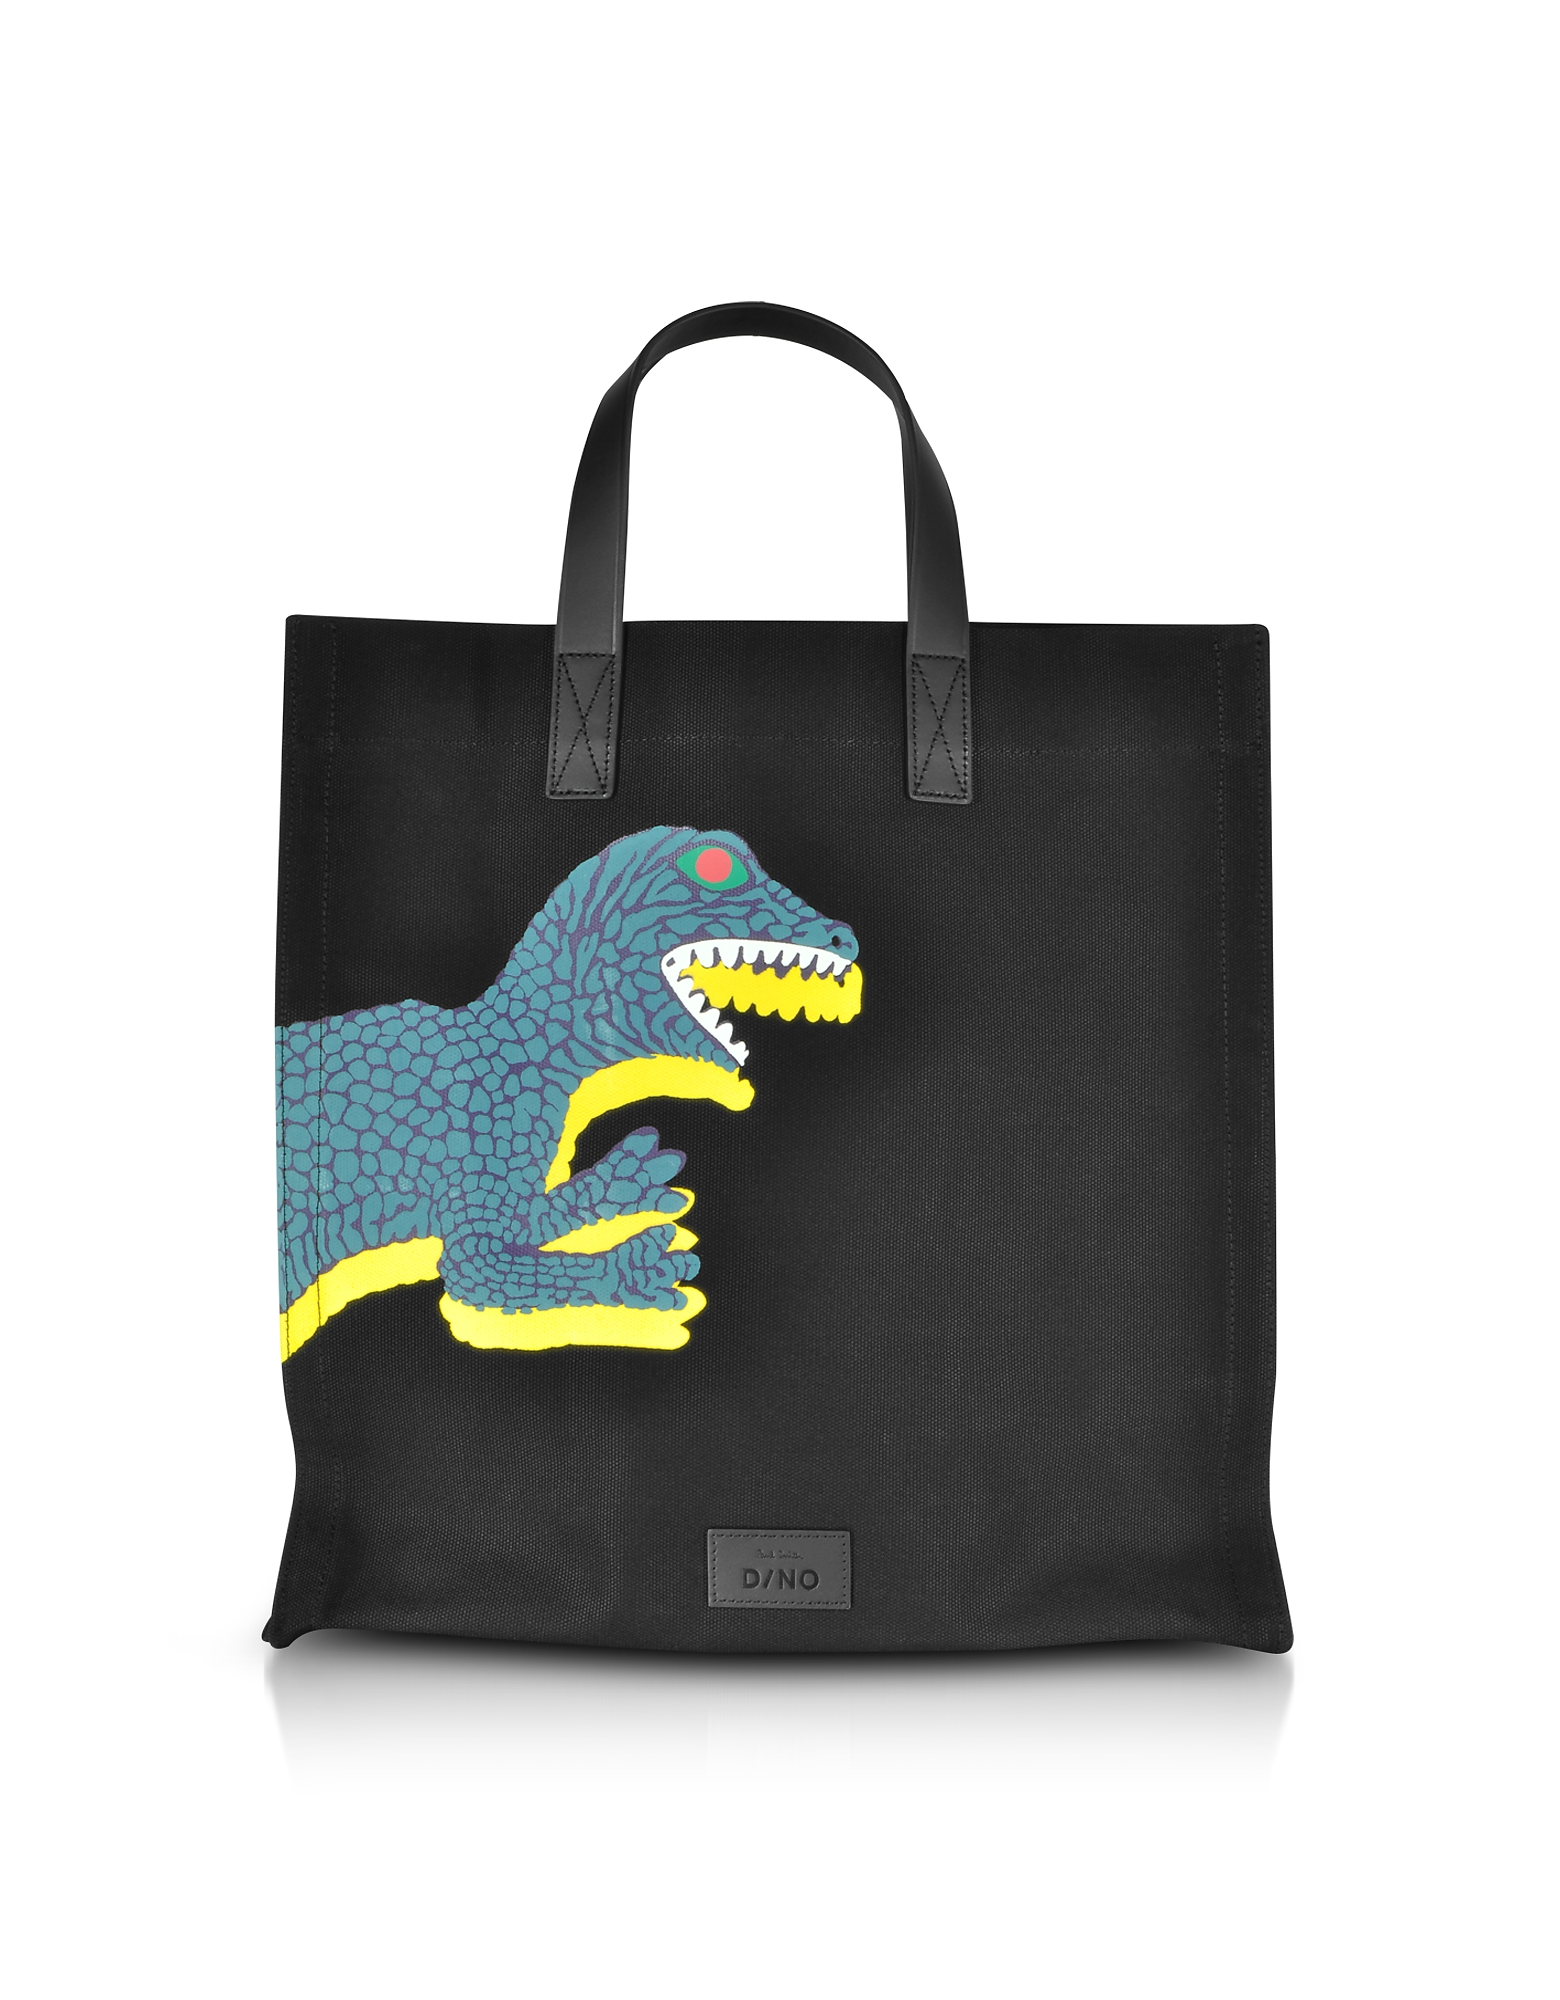 Black Dino Printed Canvas Tote Bag with Leather Handles